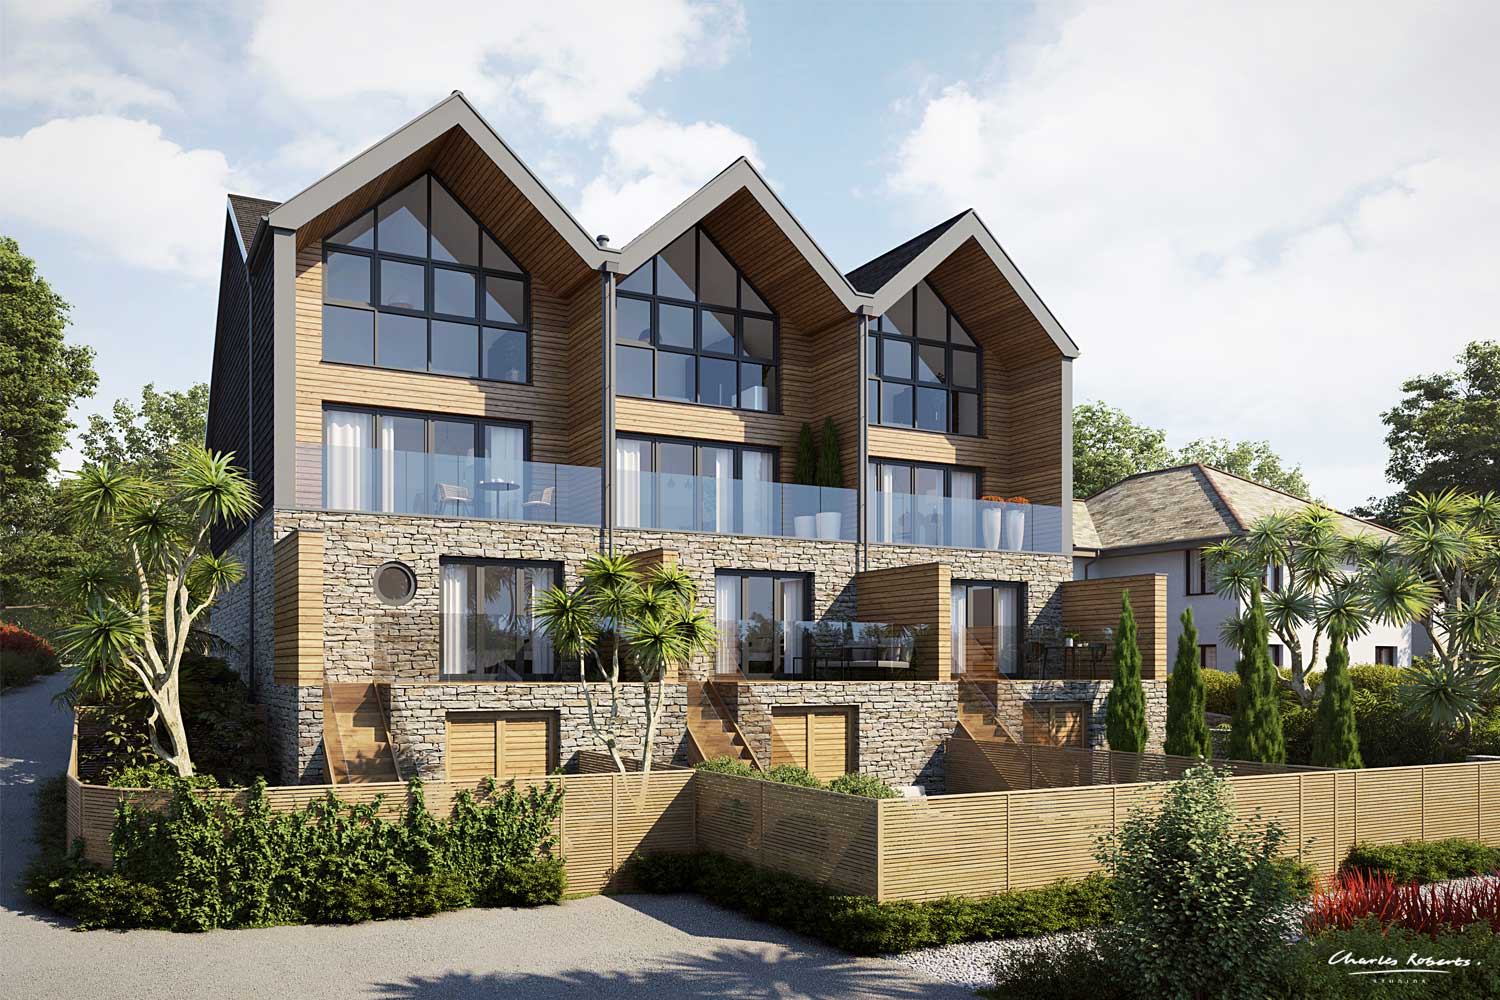 Property CGI of the townhouses